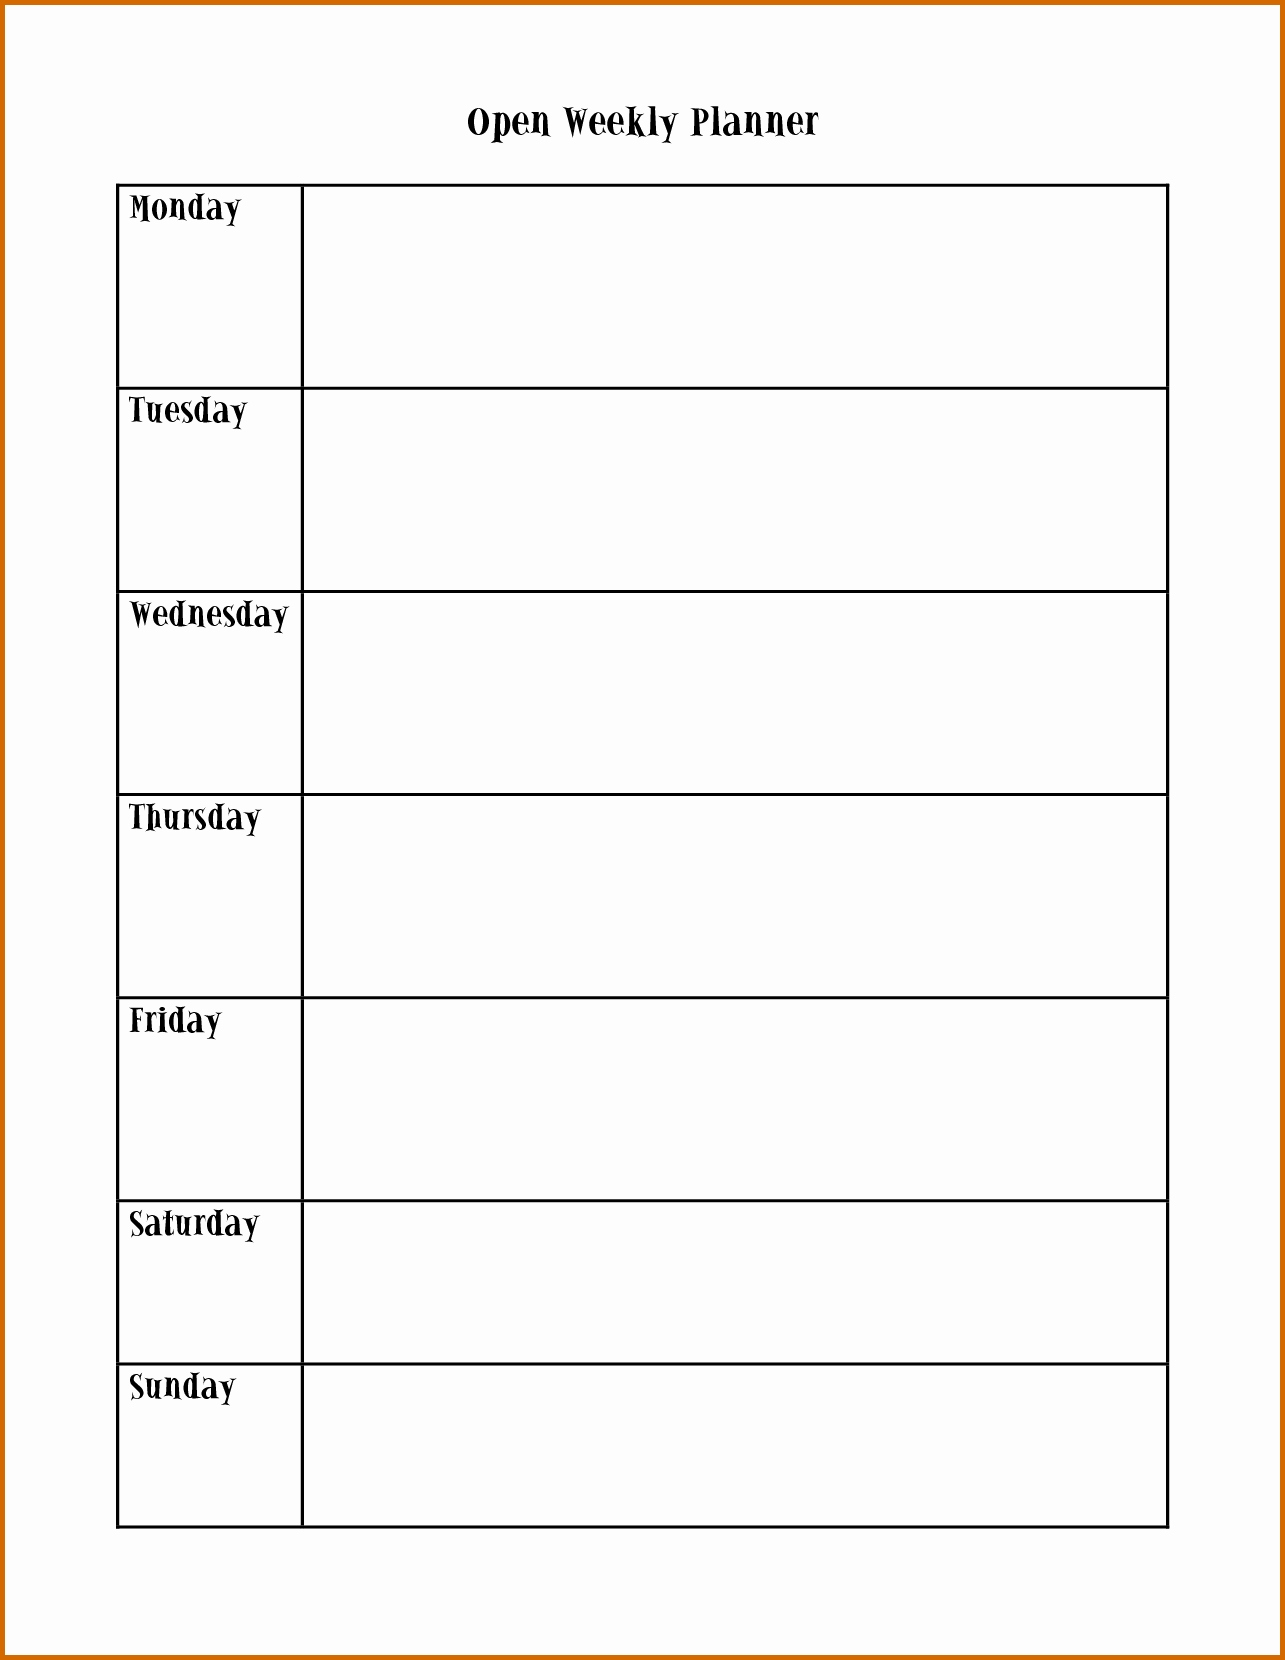 Monday To Friday Planner Template  Calendar Inspiration Design intended for Monday Through Saturday Schedule Template